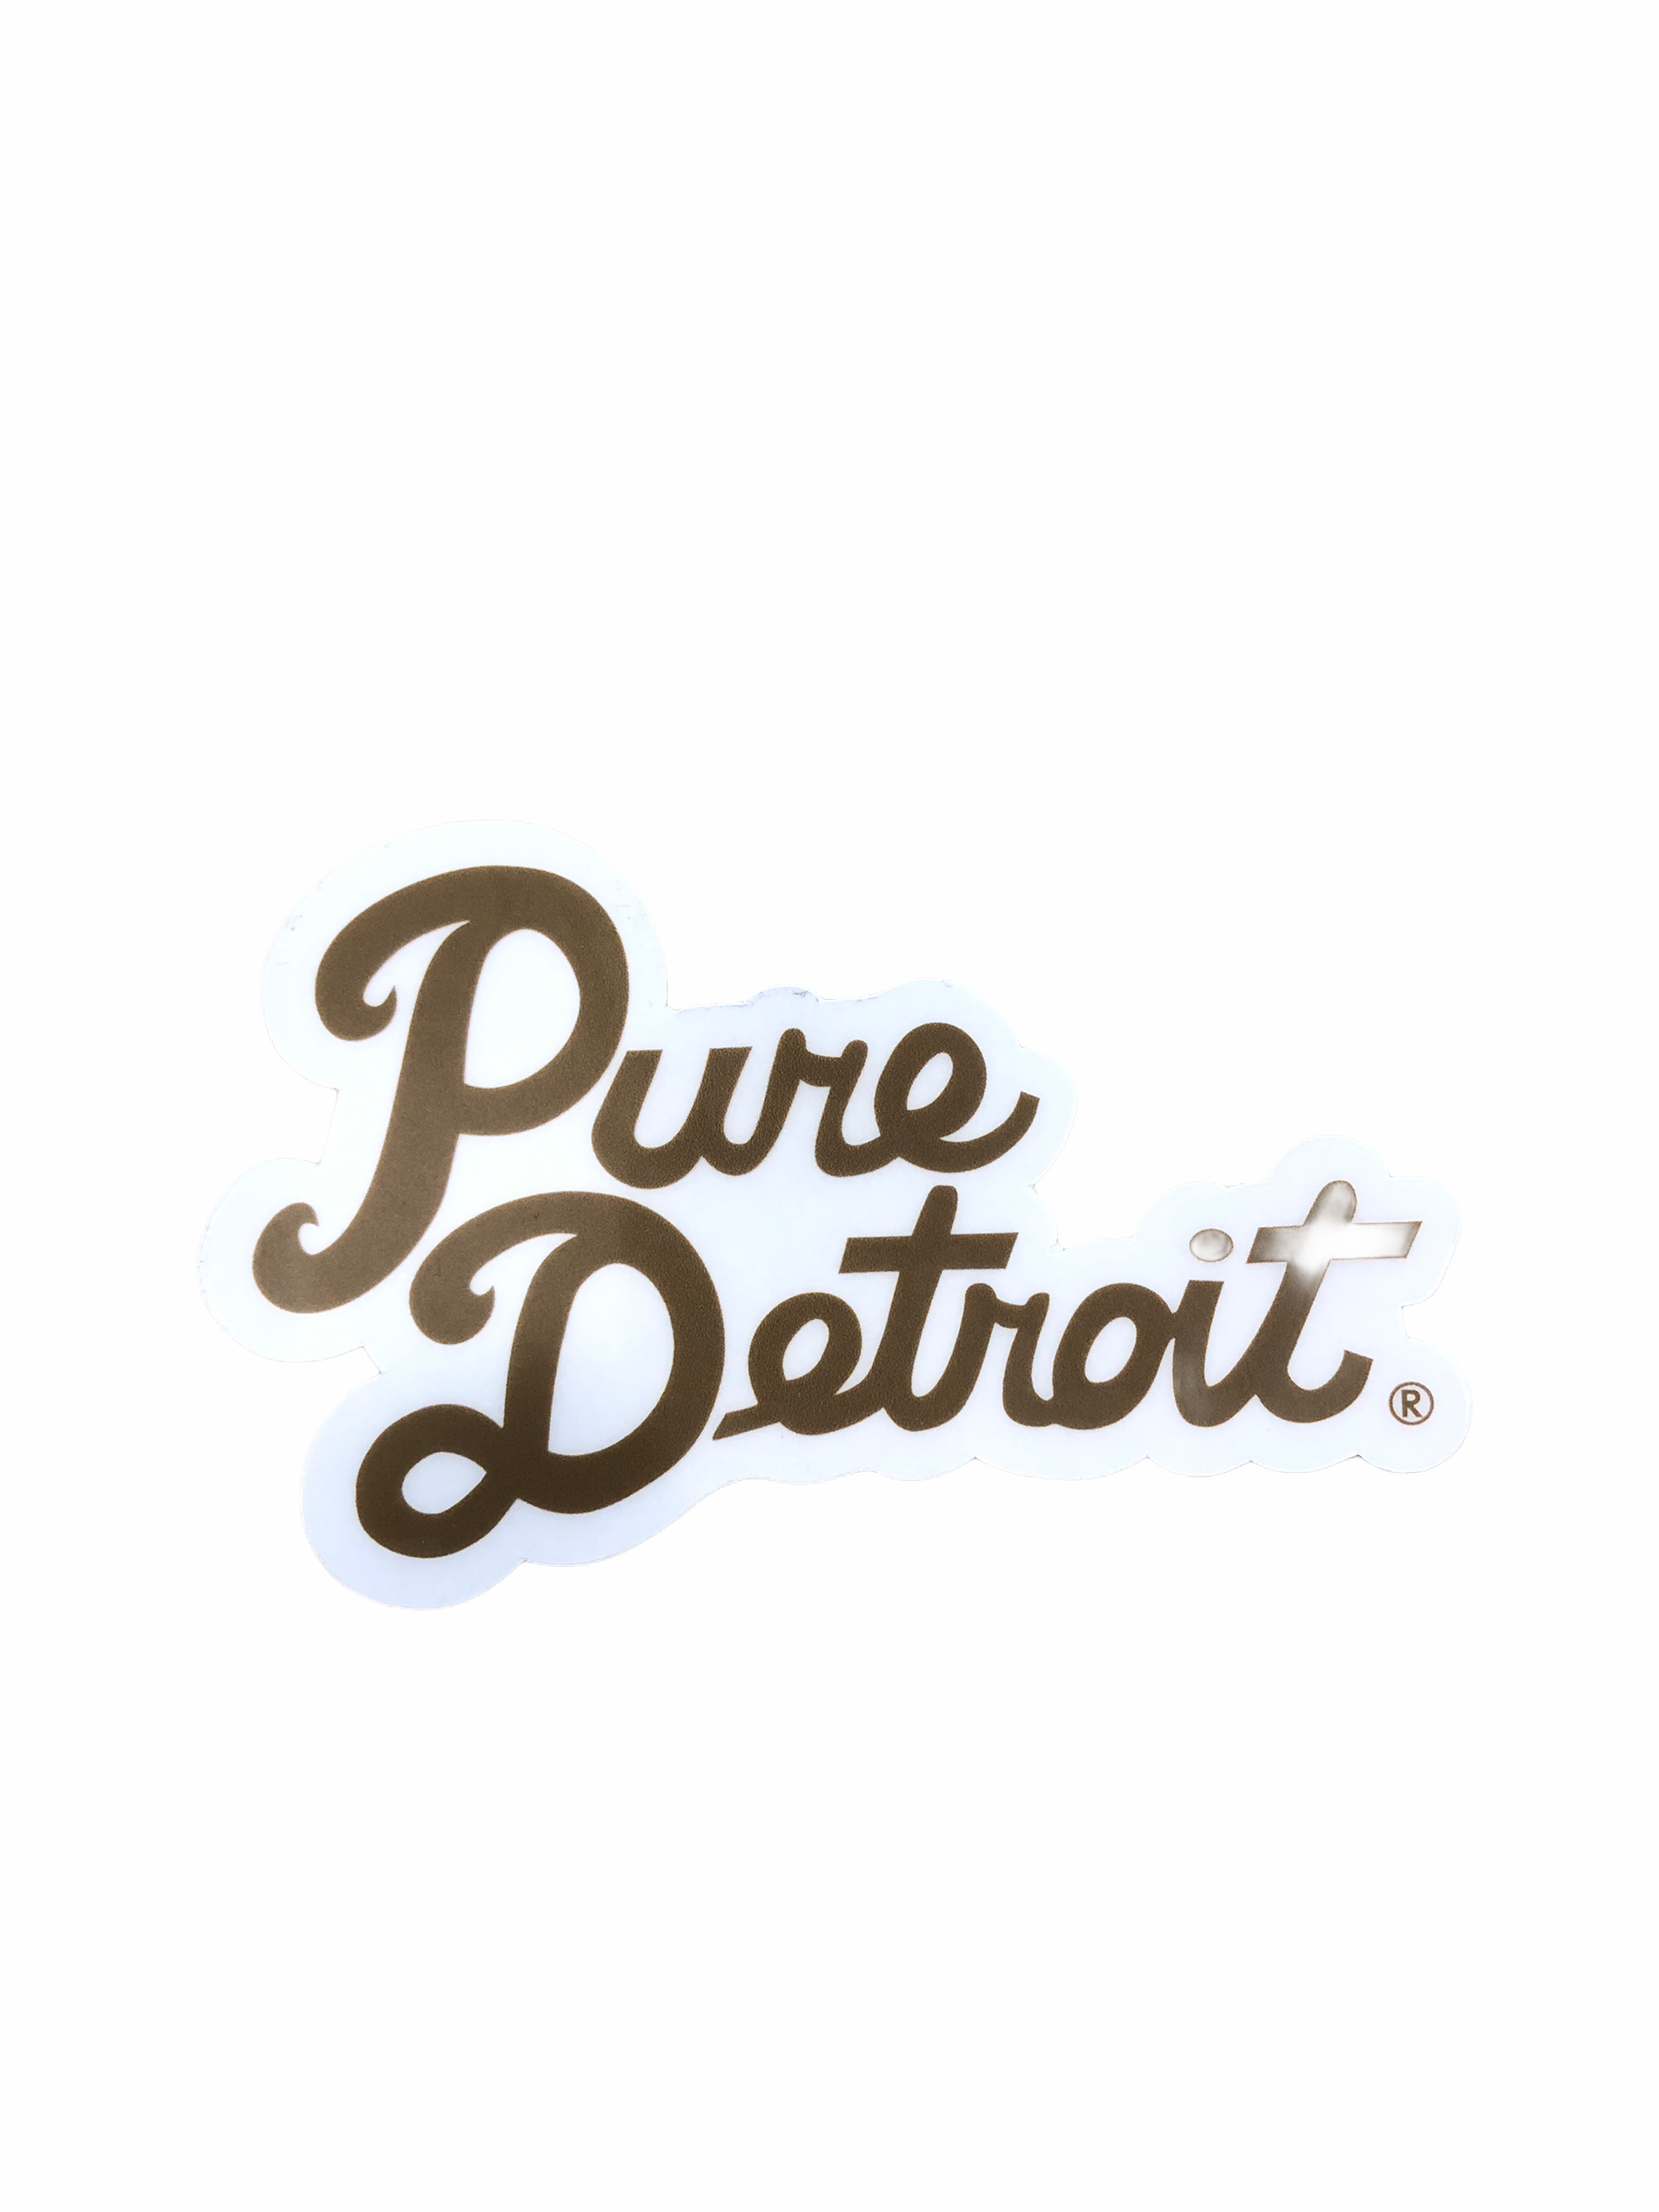 Pure Detroit Script Decal - Pure Detroit